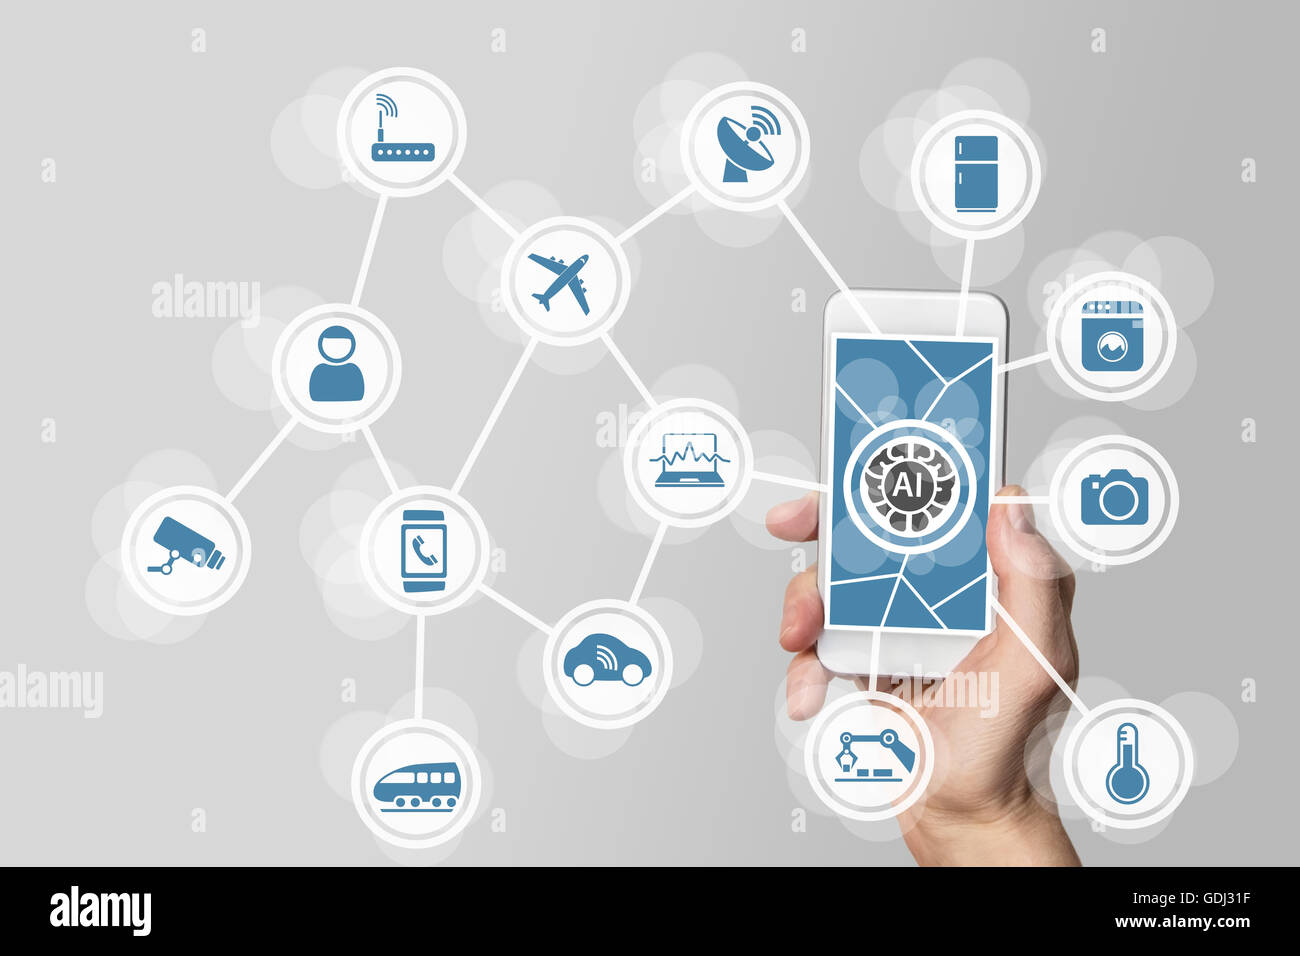 Artificial intelligence (AI) to manage internet of everything (IOT) networks - Stock Image